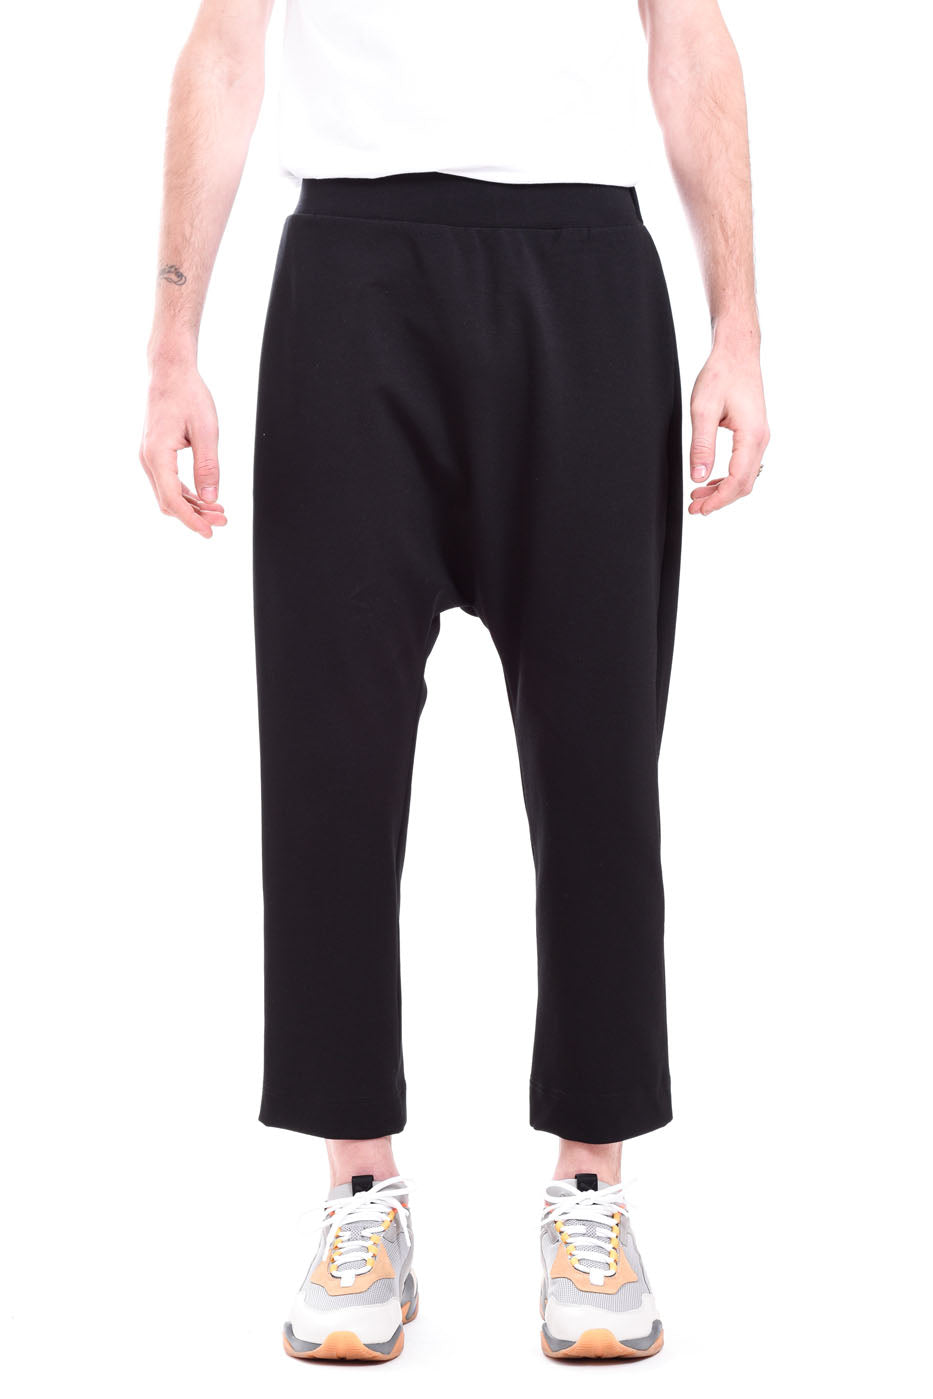 BLACK SAMURAI PANTS